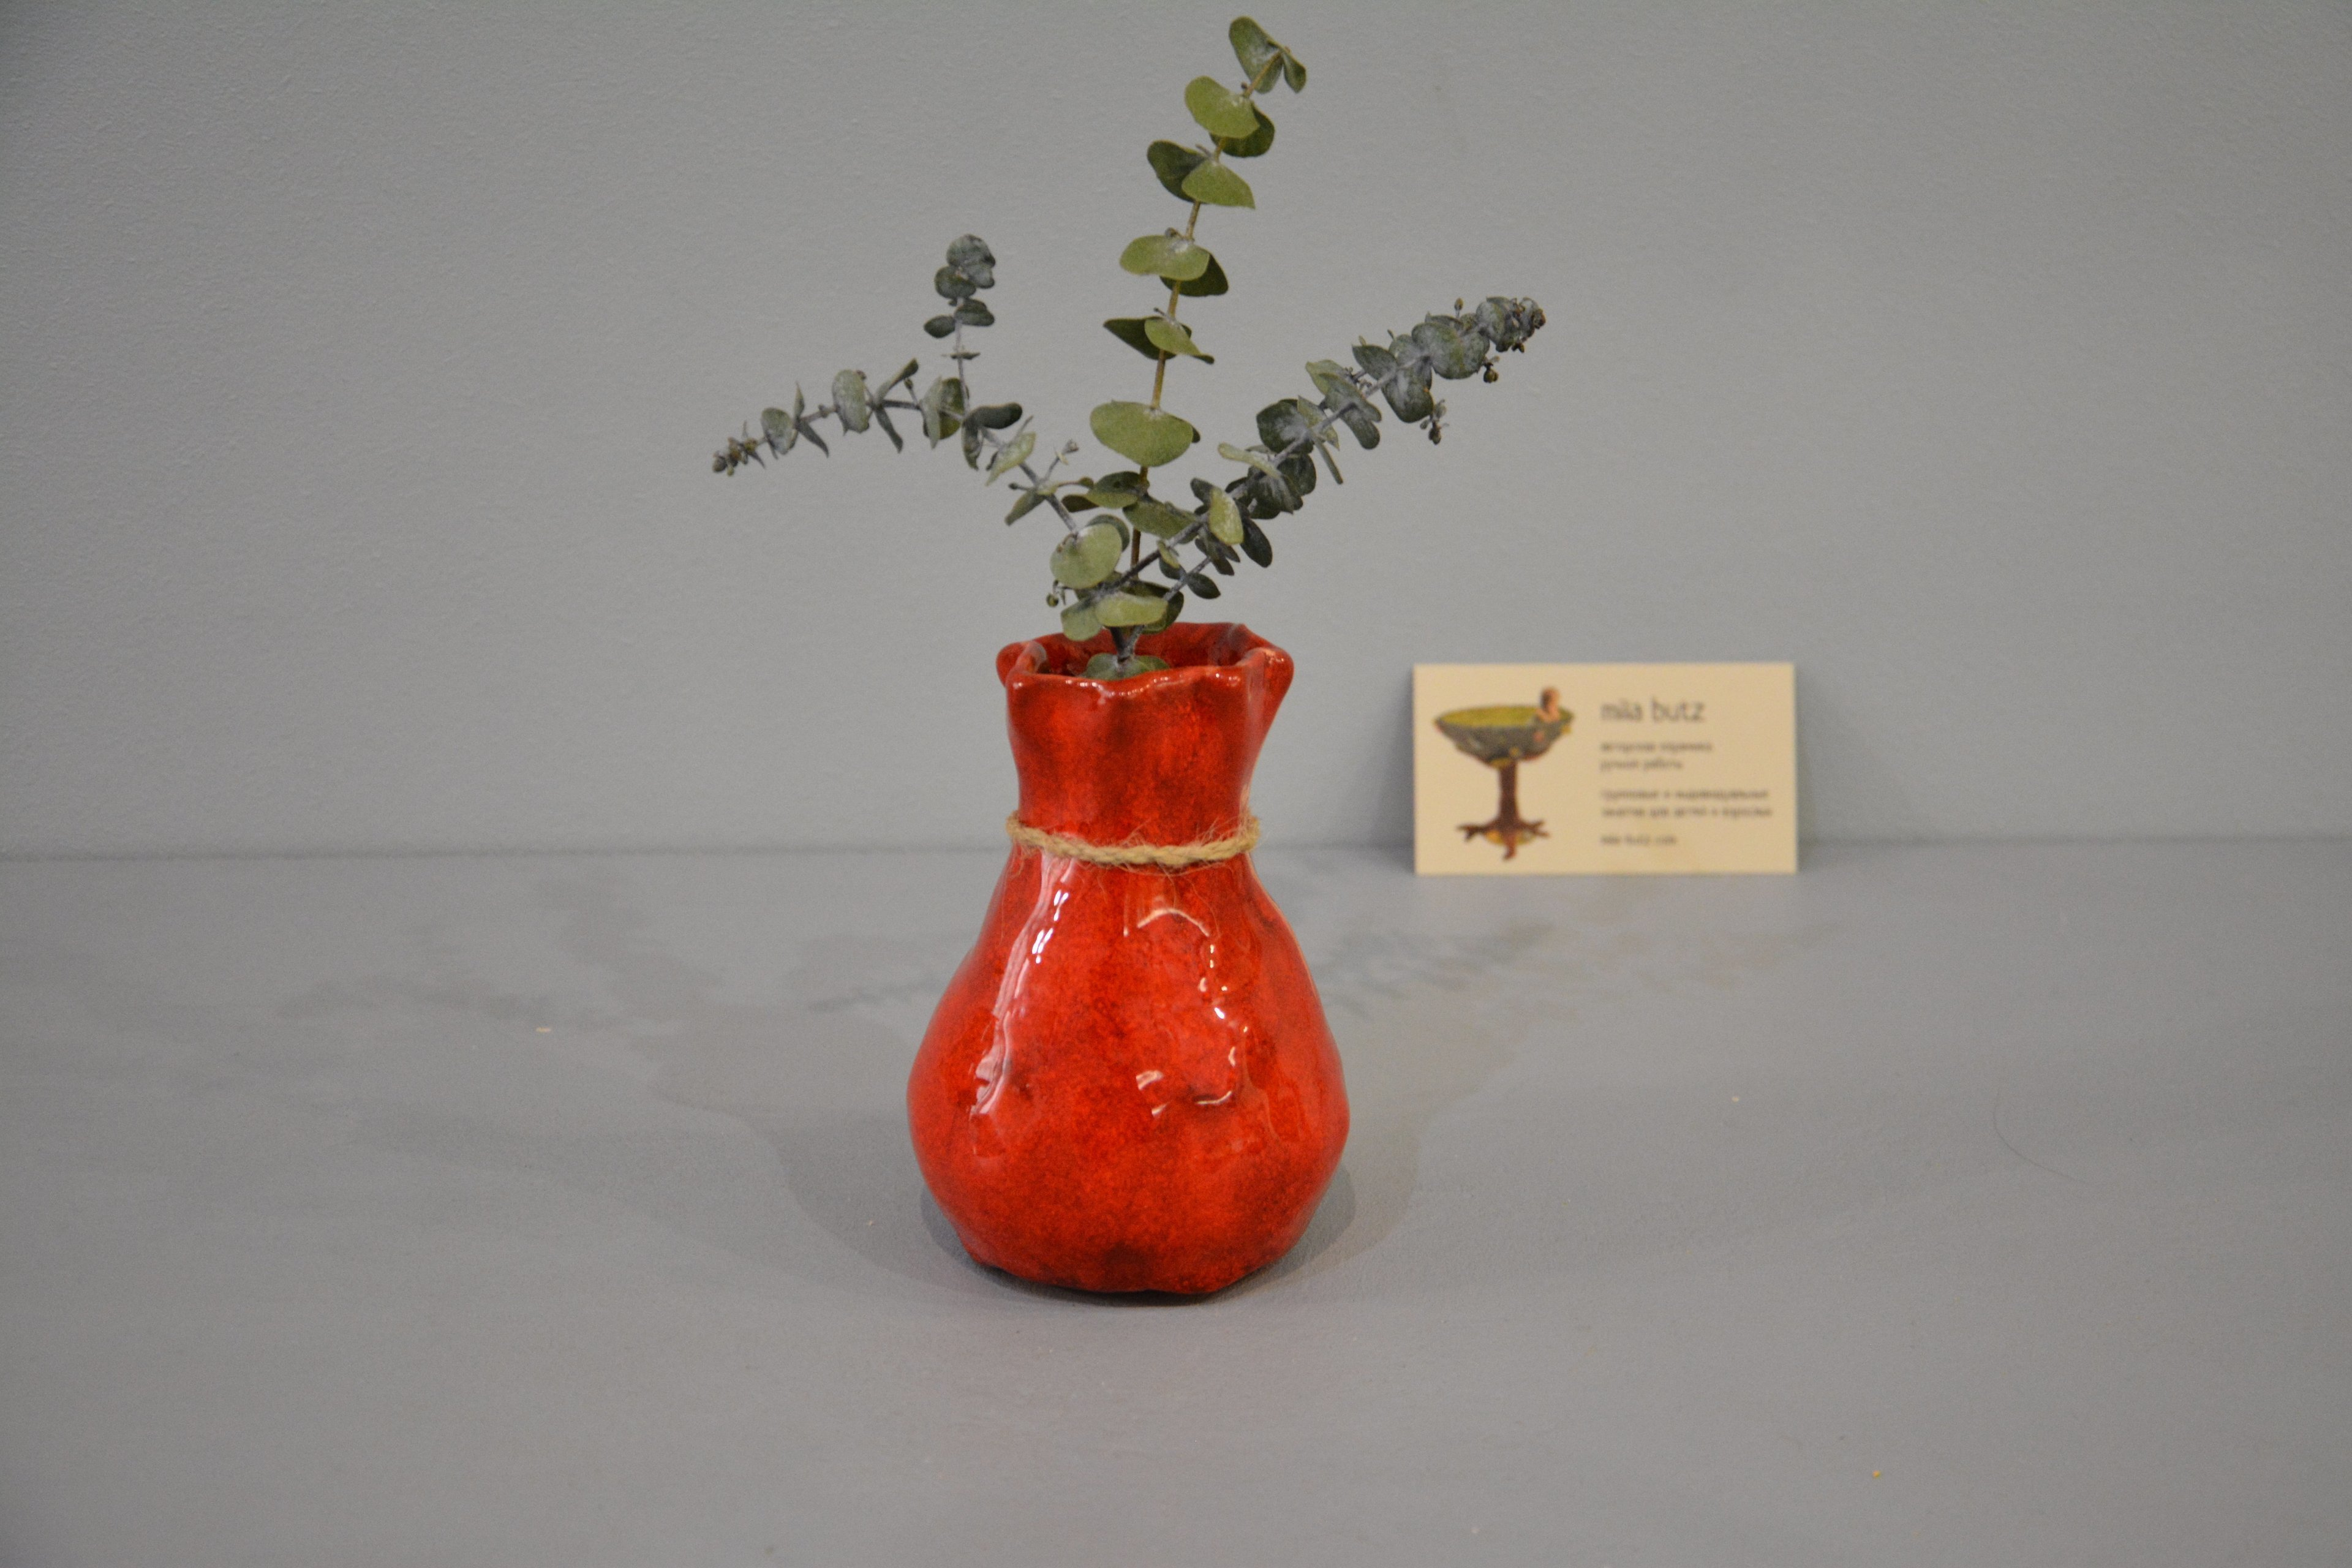 Interior vase «Red Bagful», height - 12 cm, color - red. Photo 1433.